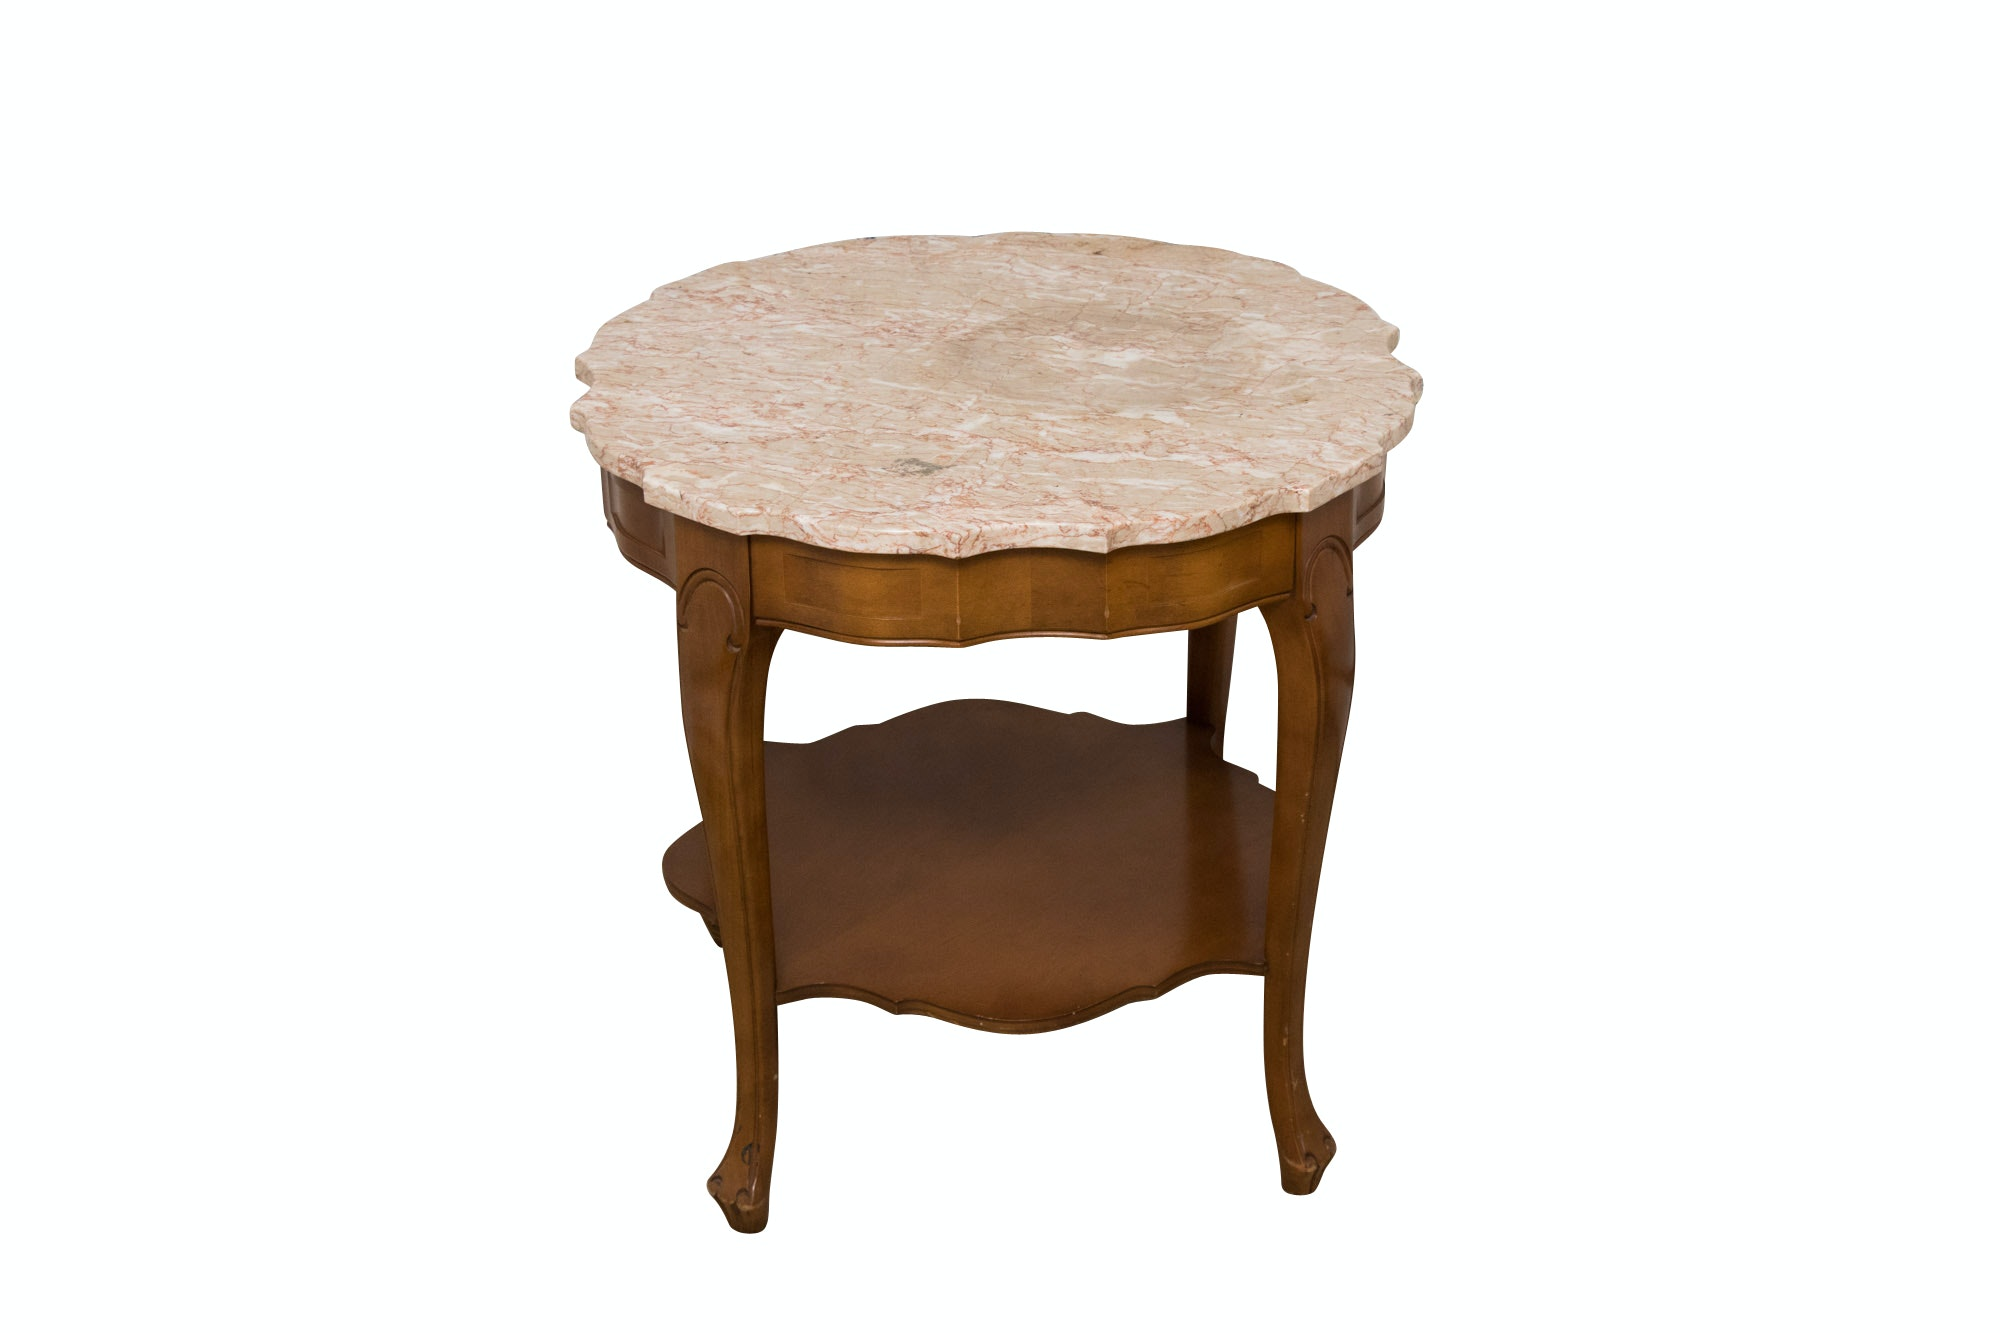 Vintage French Provincial Style Scalloped Marble Top Accent Table